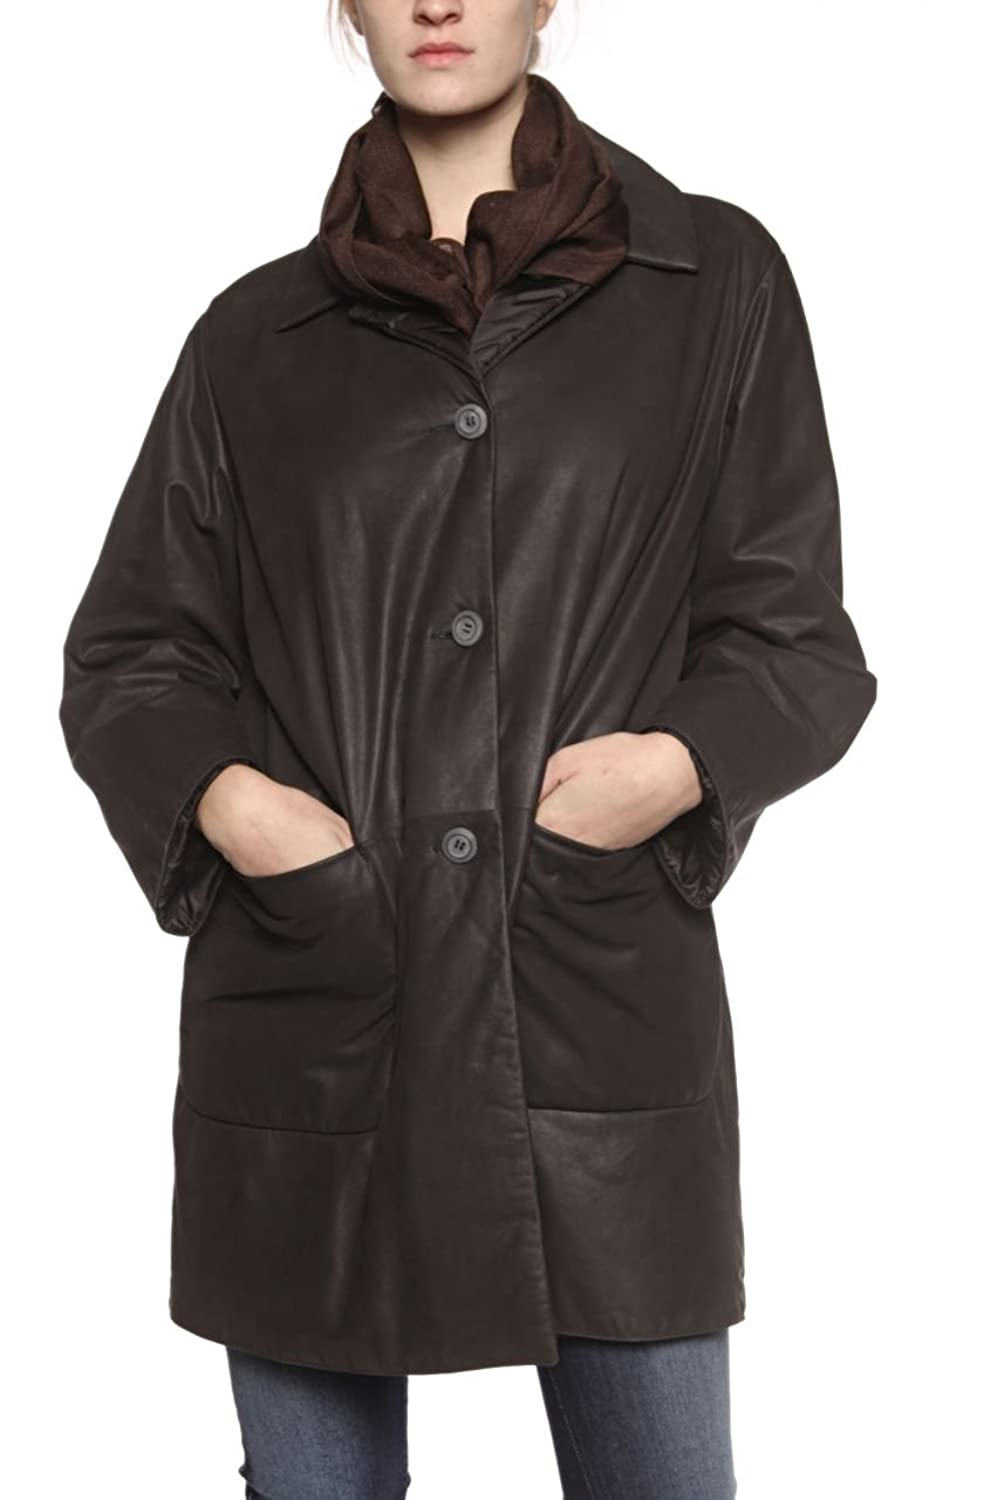 Foreight Collection Damen Jacke Ledermantel Wendemantel DOUBLE FACE, Farbe: Schwarz günstig bestellen